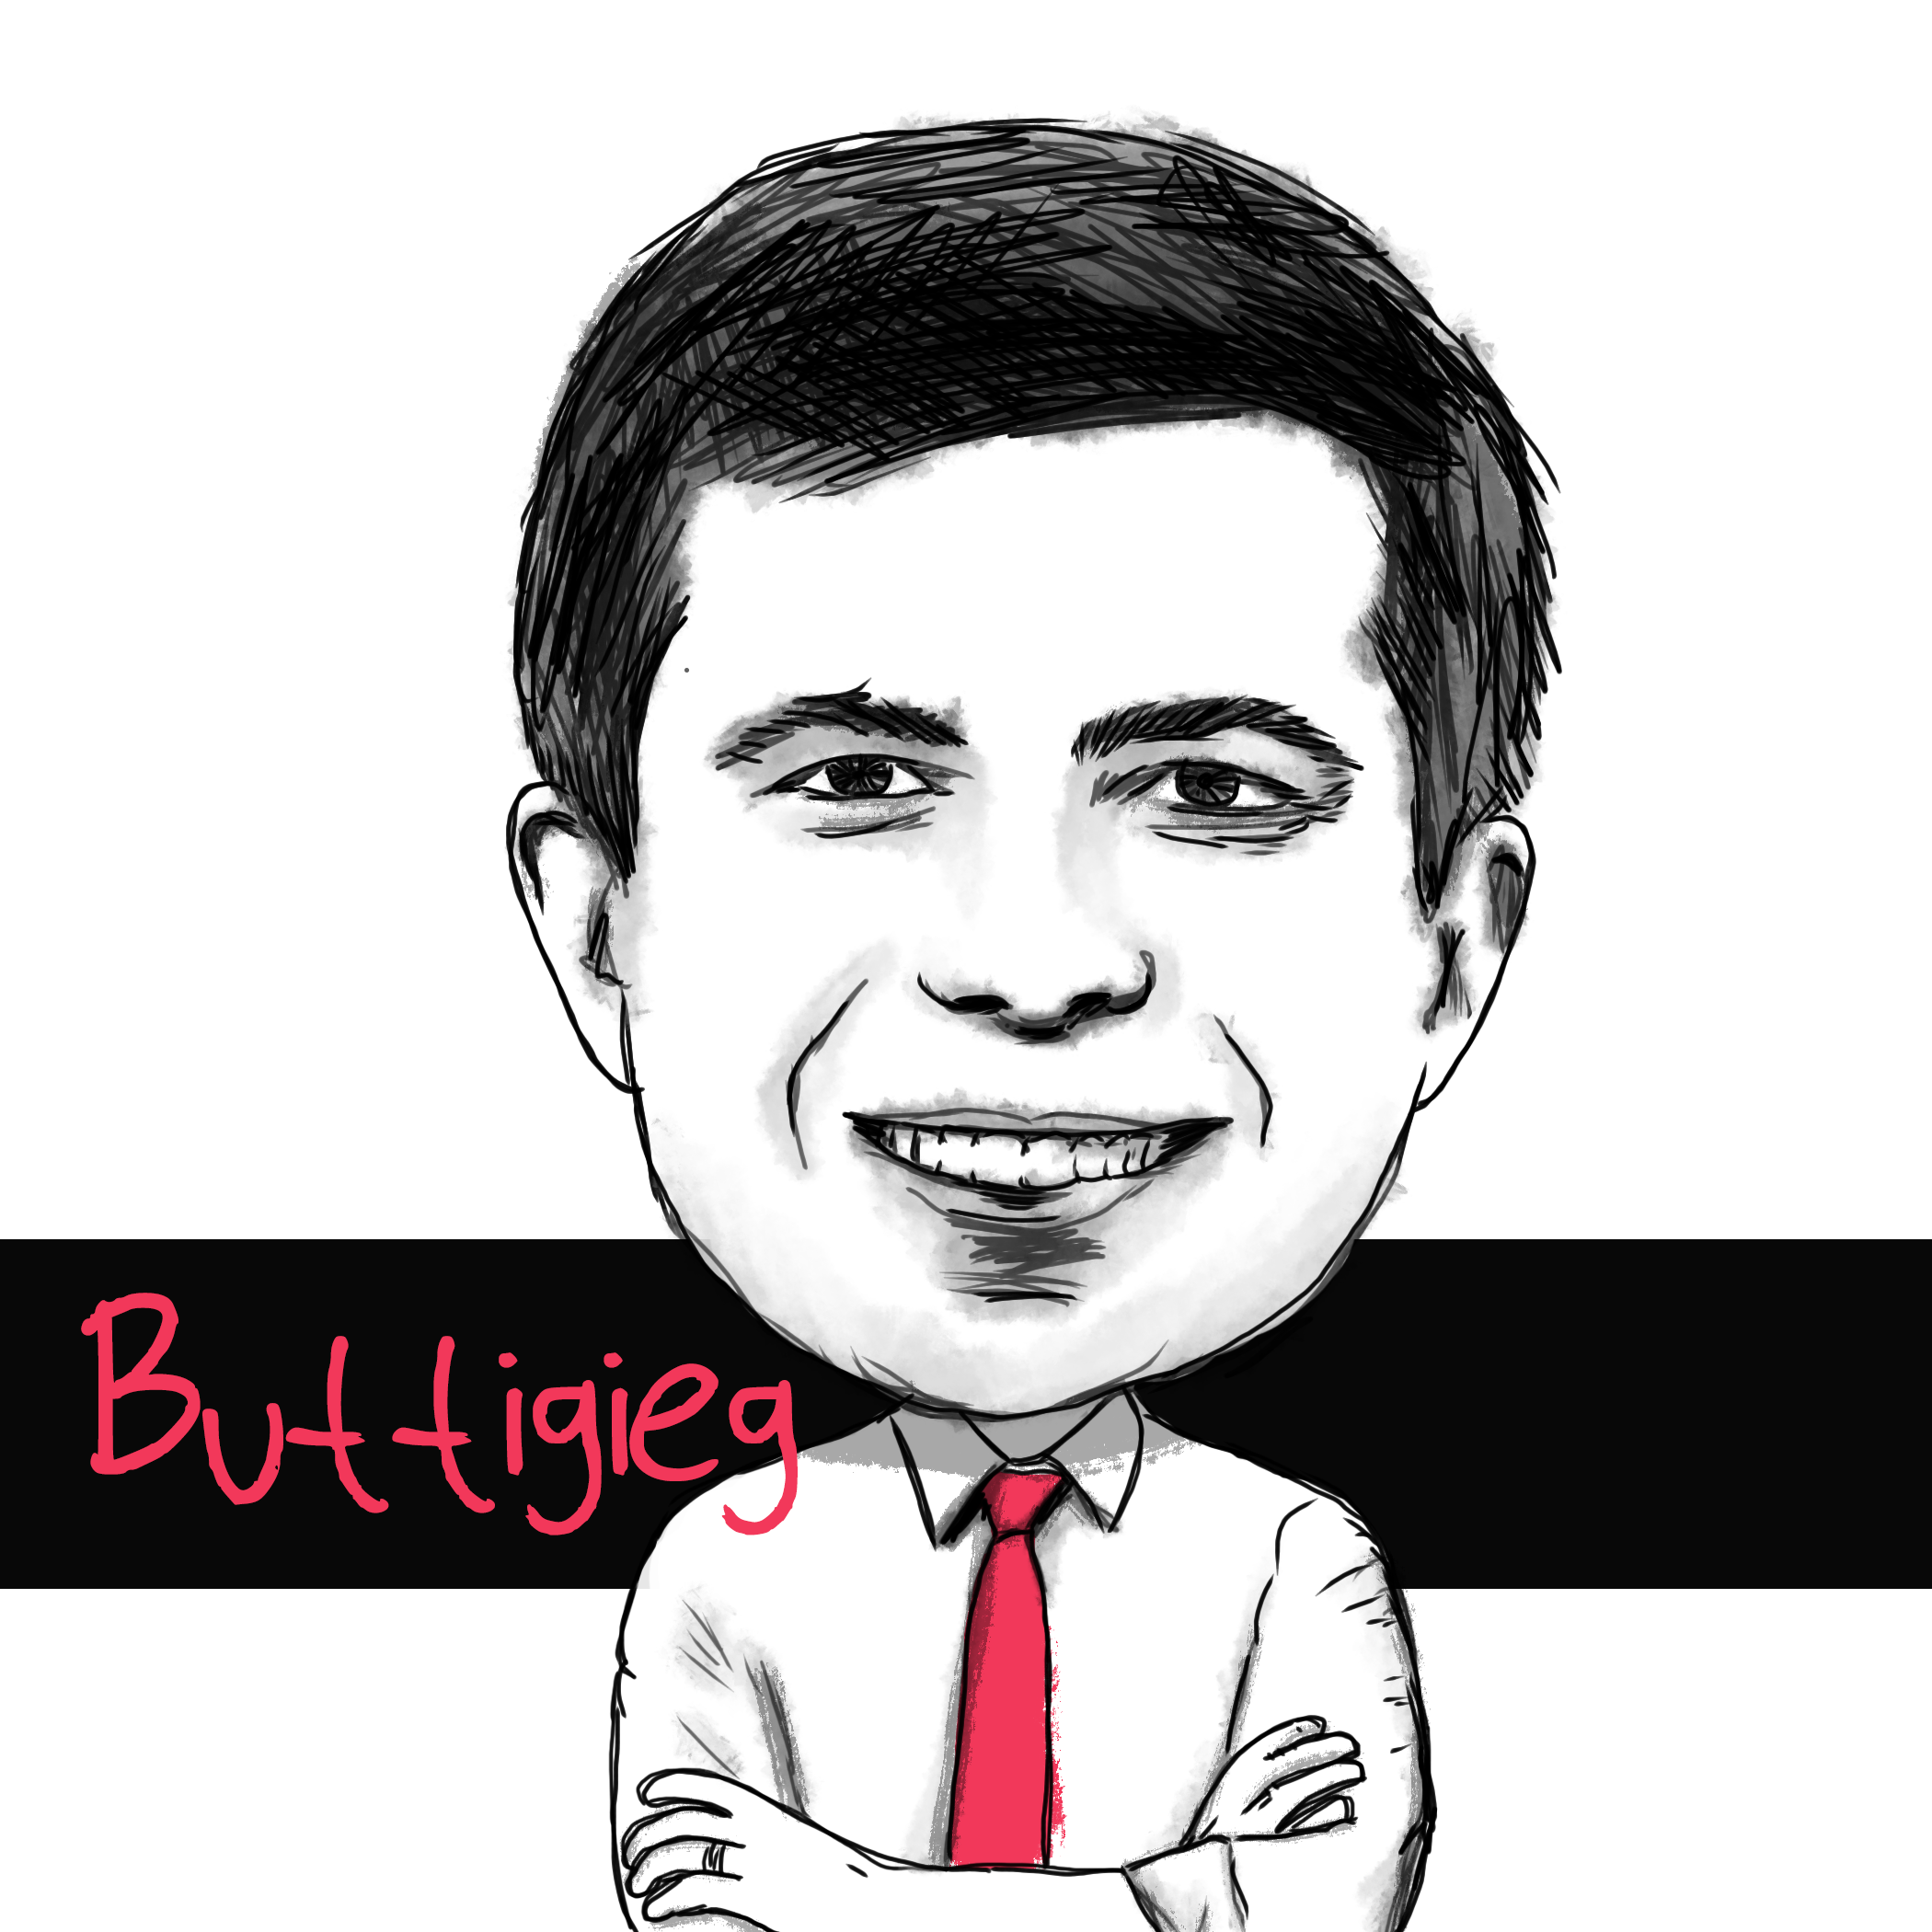 Mayor Pete - Pete Buttigieg For America - https://www.peteforamerica.com/